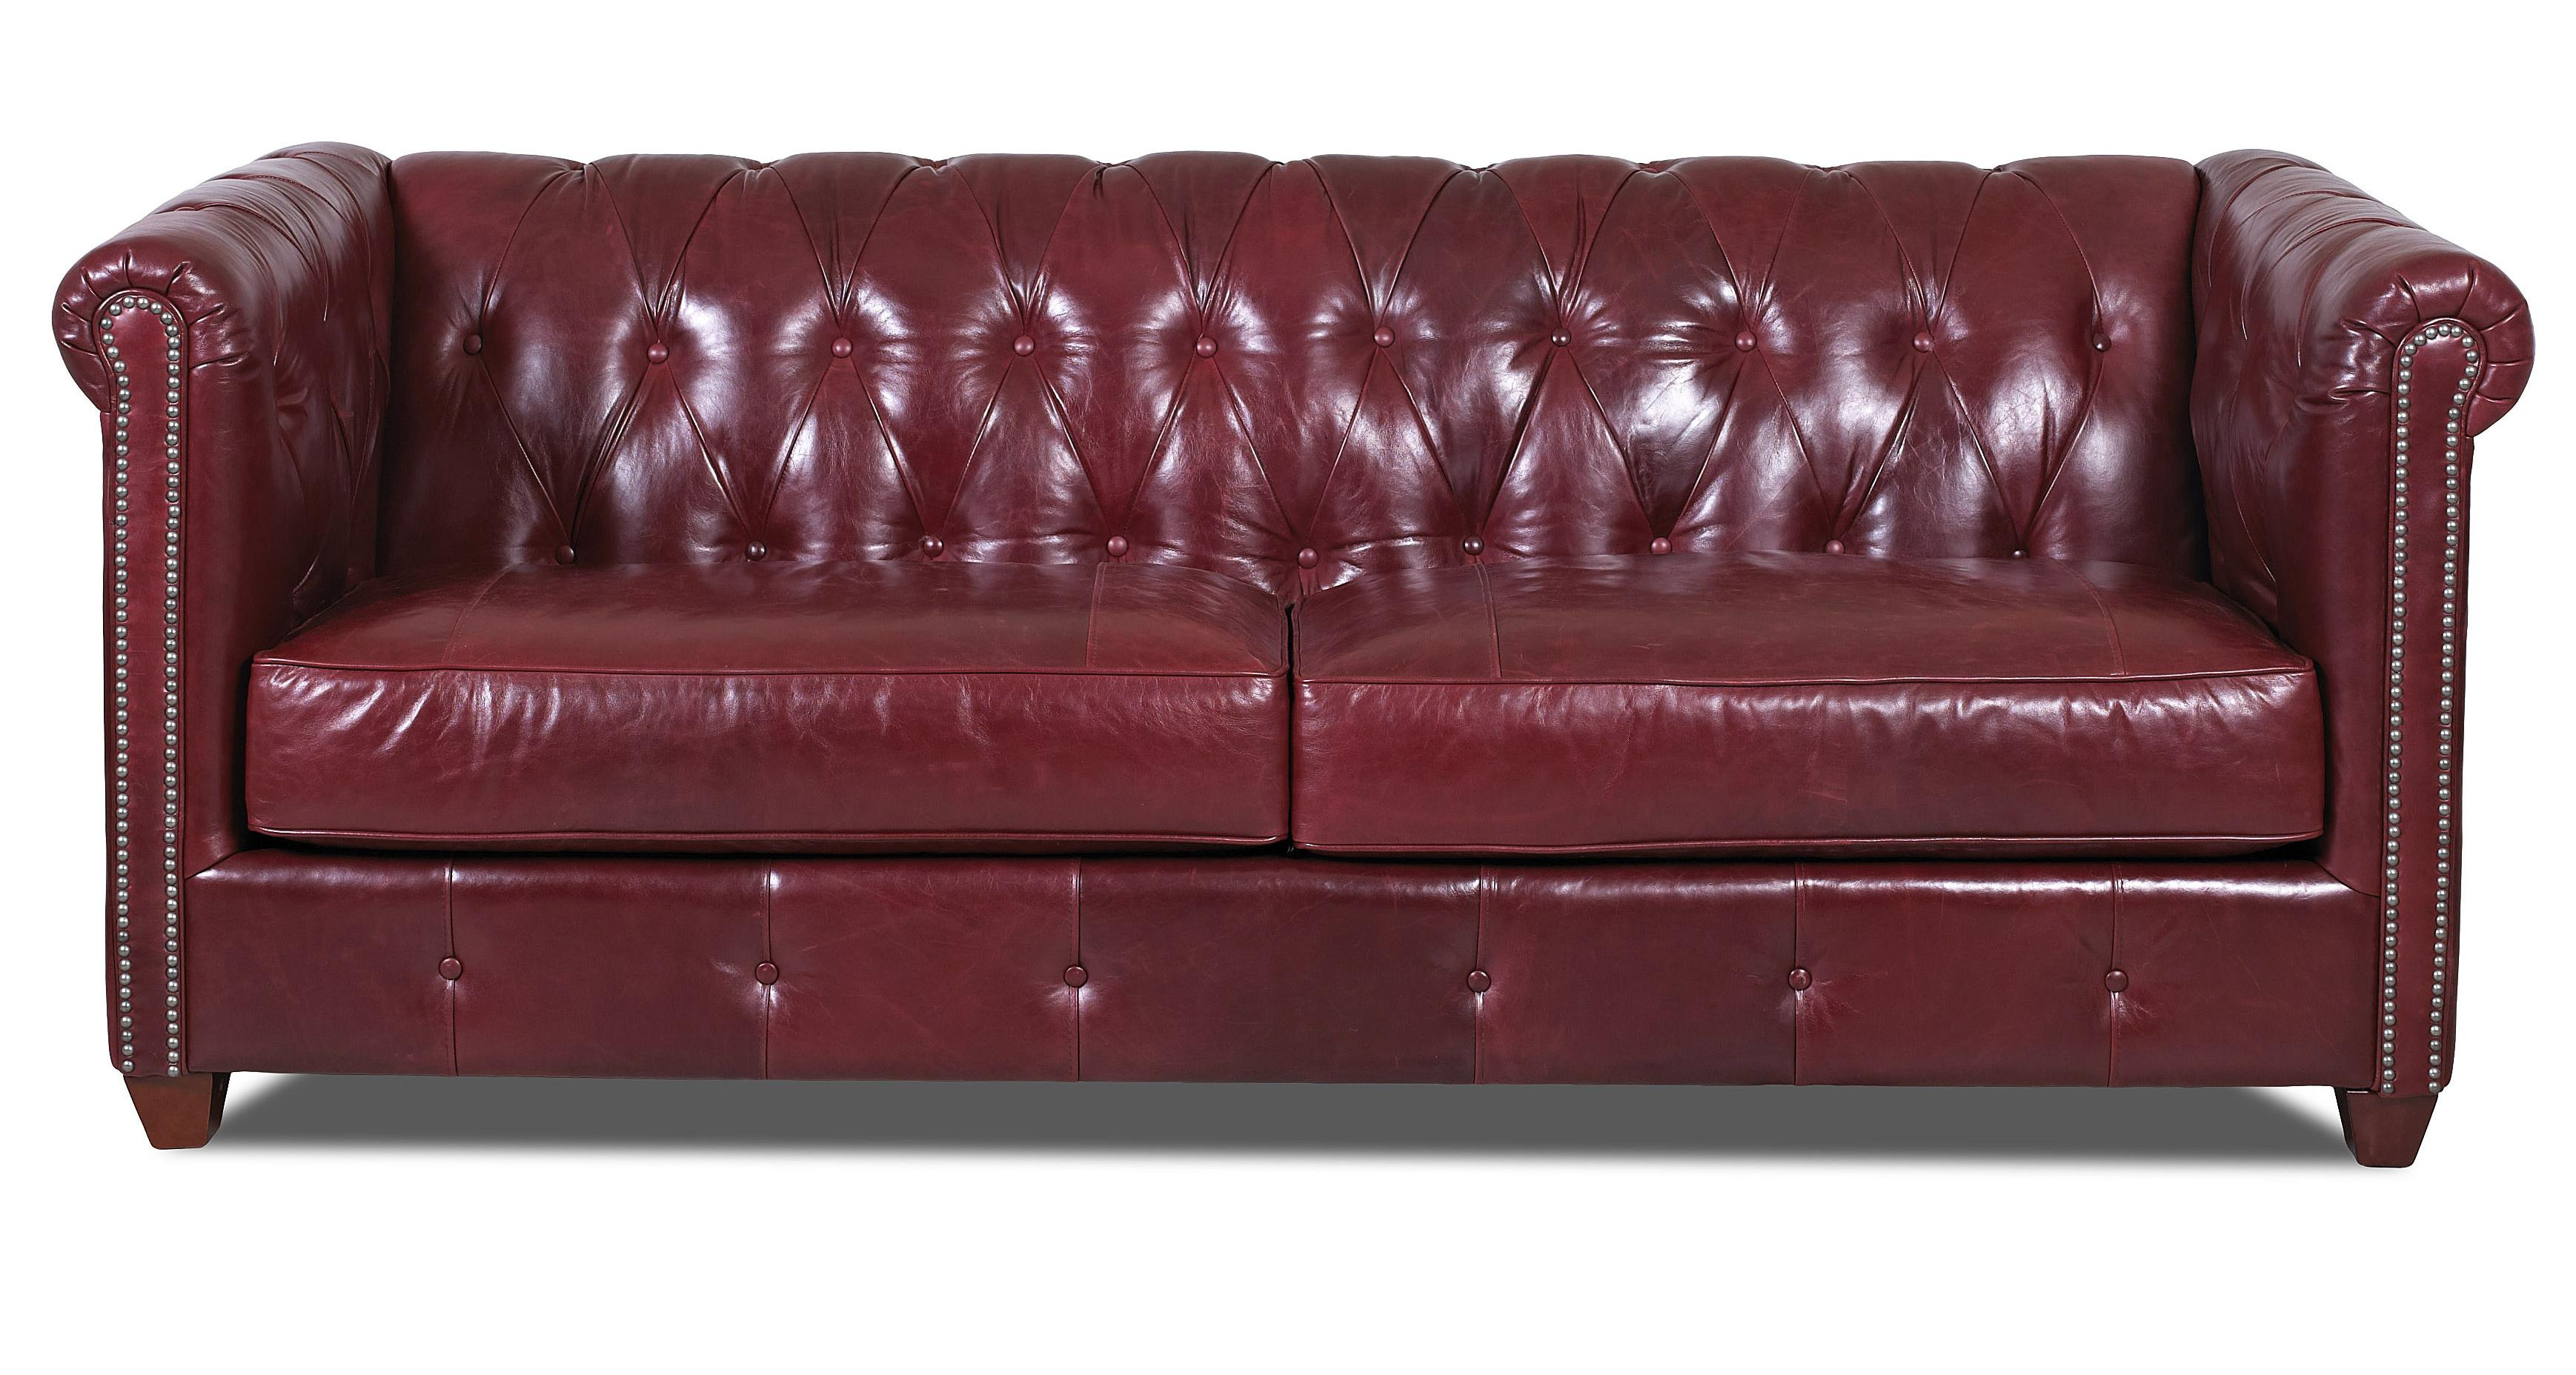 Beech Mountain Traditional Sofa by Klaussner at Johnny Janosik